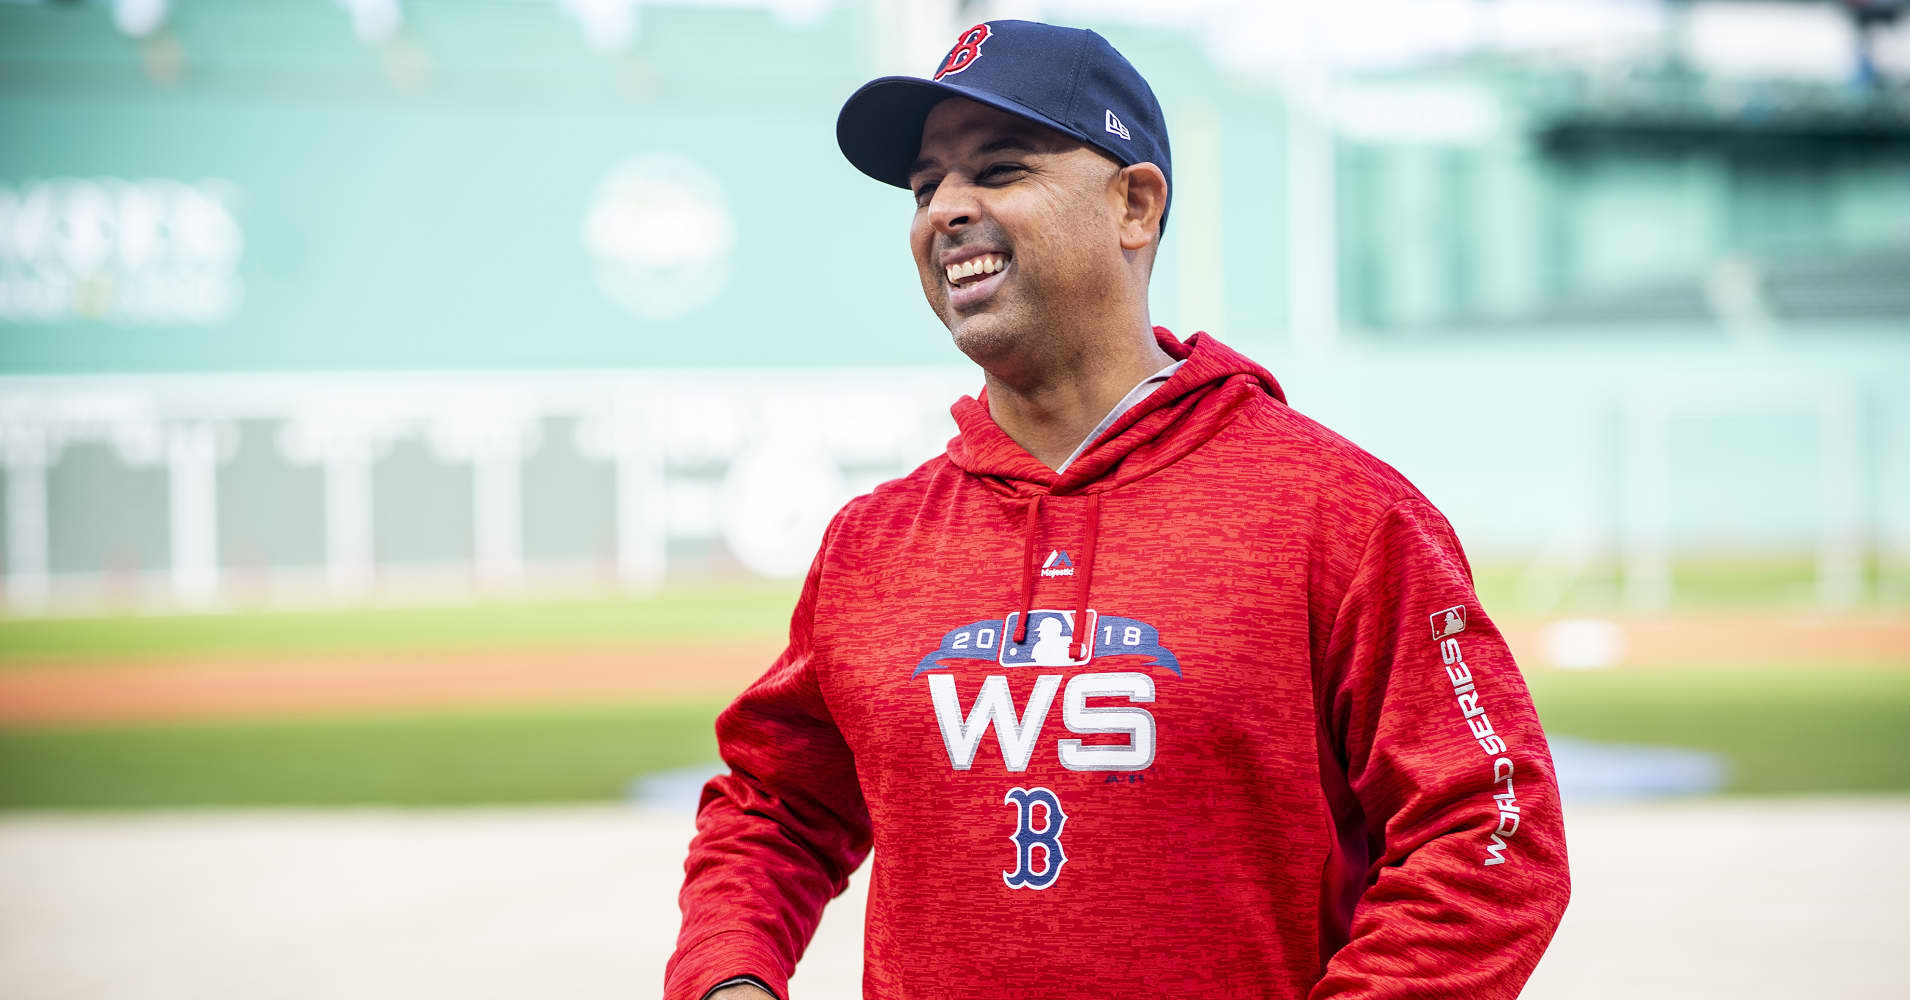 Red Sox manager Alex Cora's contract